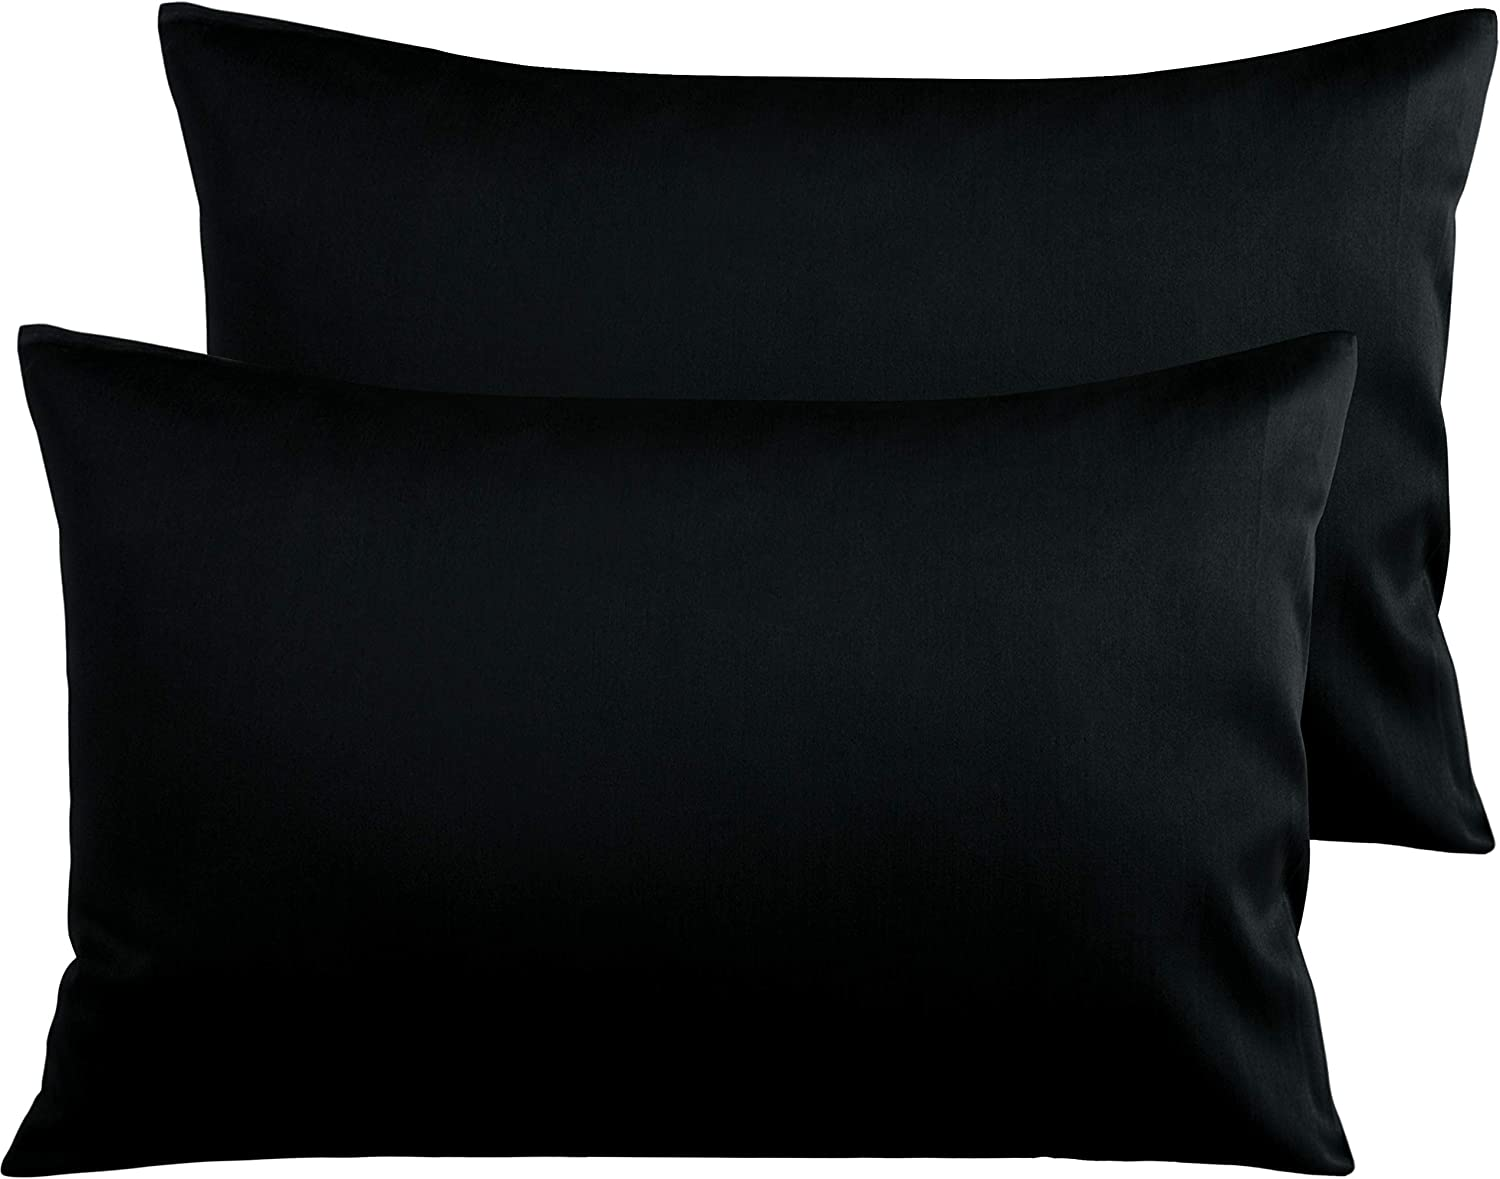 NTBAY 500 Thread Count Cotton Queen Pillowcase, Super Soft and Breathable Envelope Closure Pillow Case, 20 x 30 Inches, Black